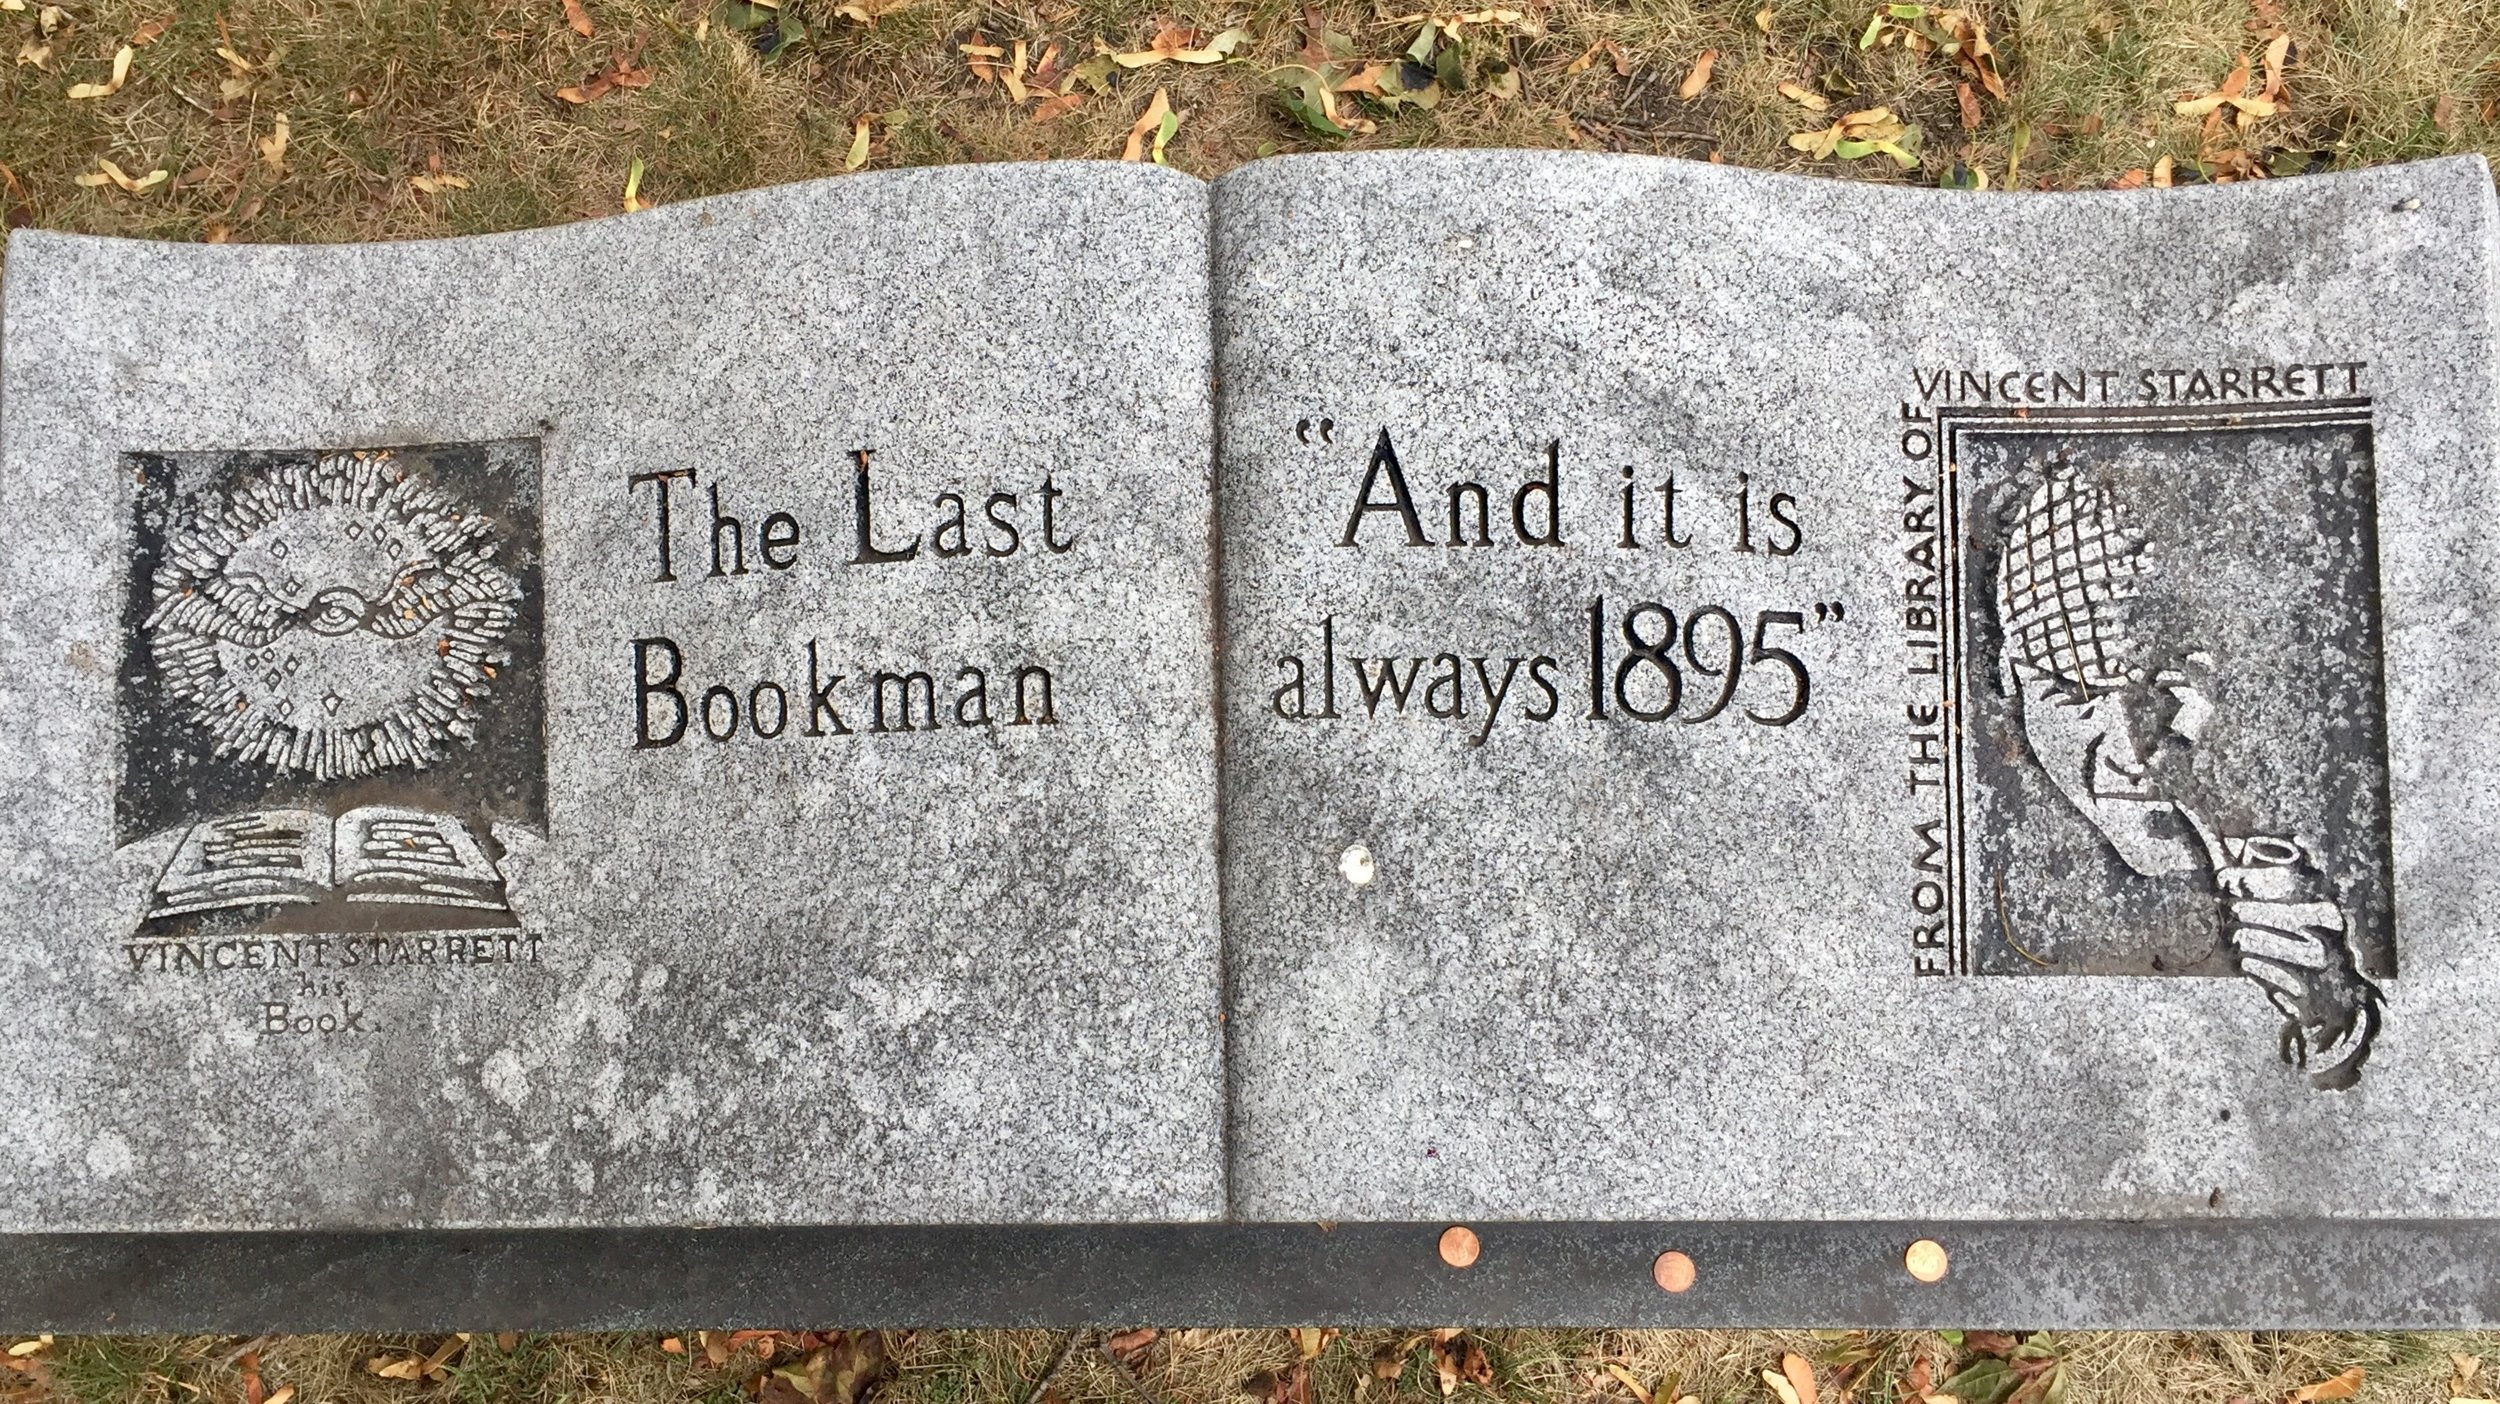 """Vincent Starrett's headstone as it looks today in Graceland Cemetery, Chicago. I took this photo in October. Looking down from the top, the stone looks like a large book, with iconic images on both """"pages."""" Time and weather are taking their toll on this final monument to Starrett and his wife. I did not leave the pennies."""